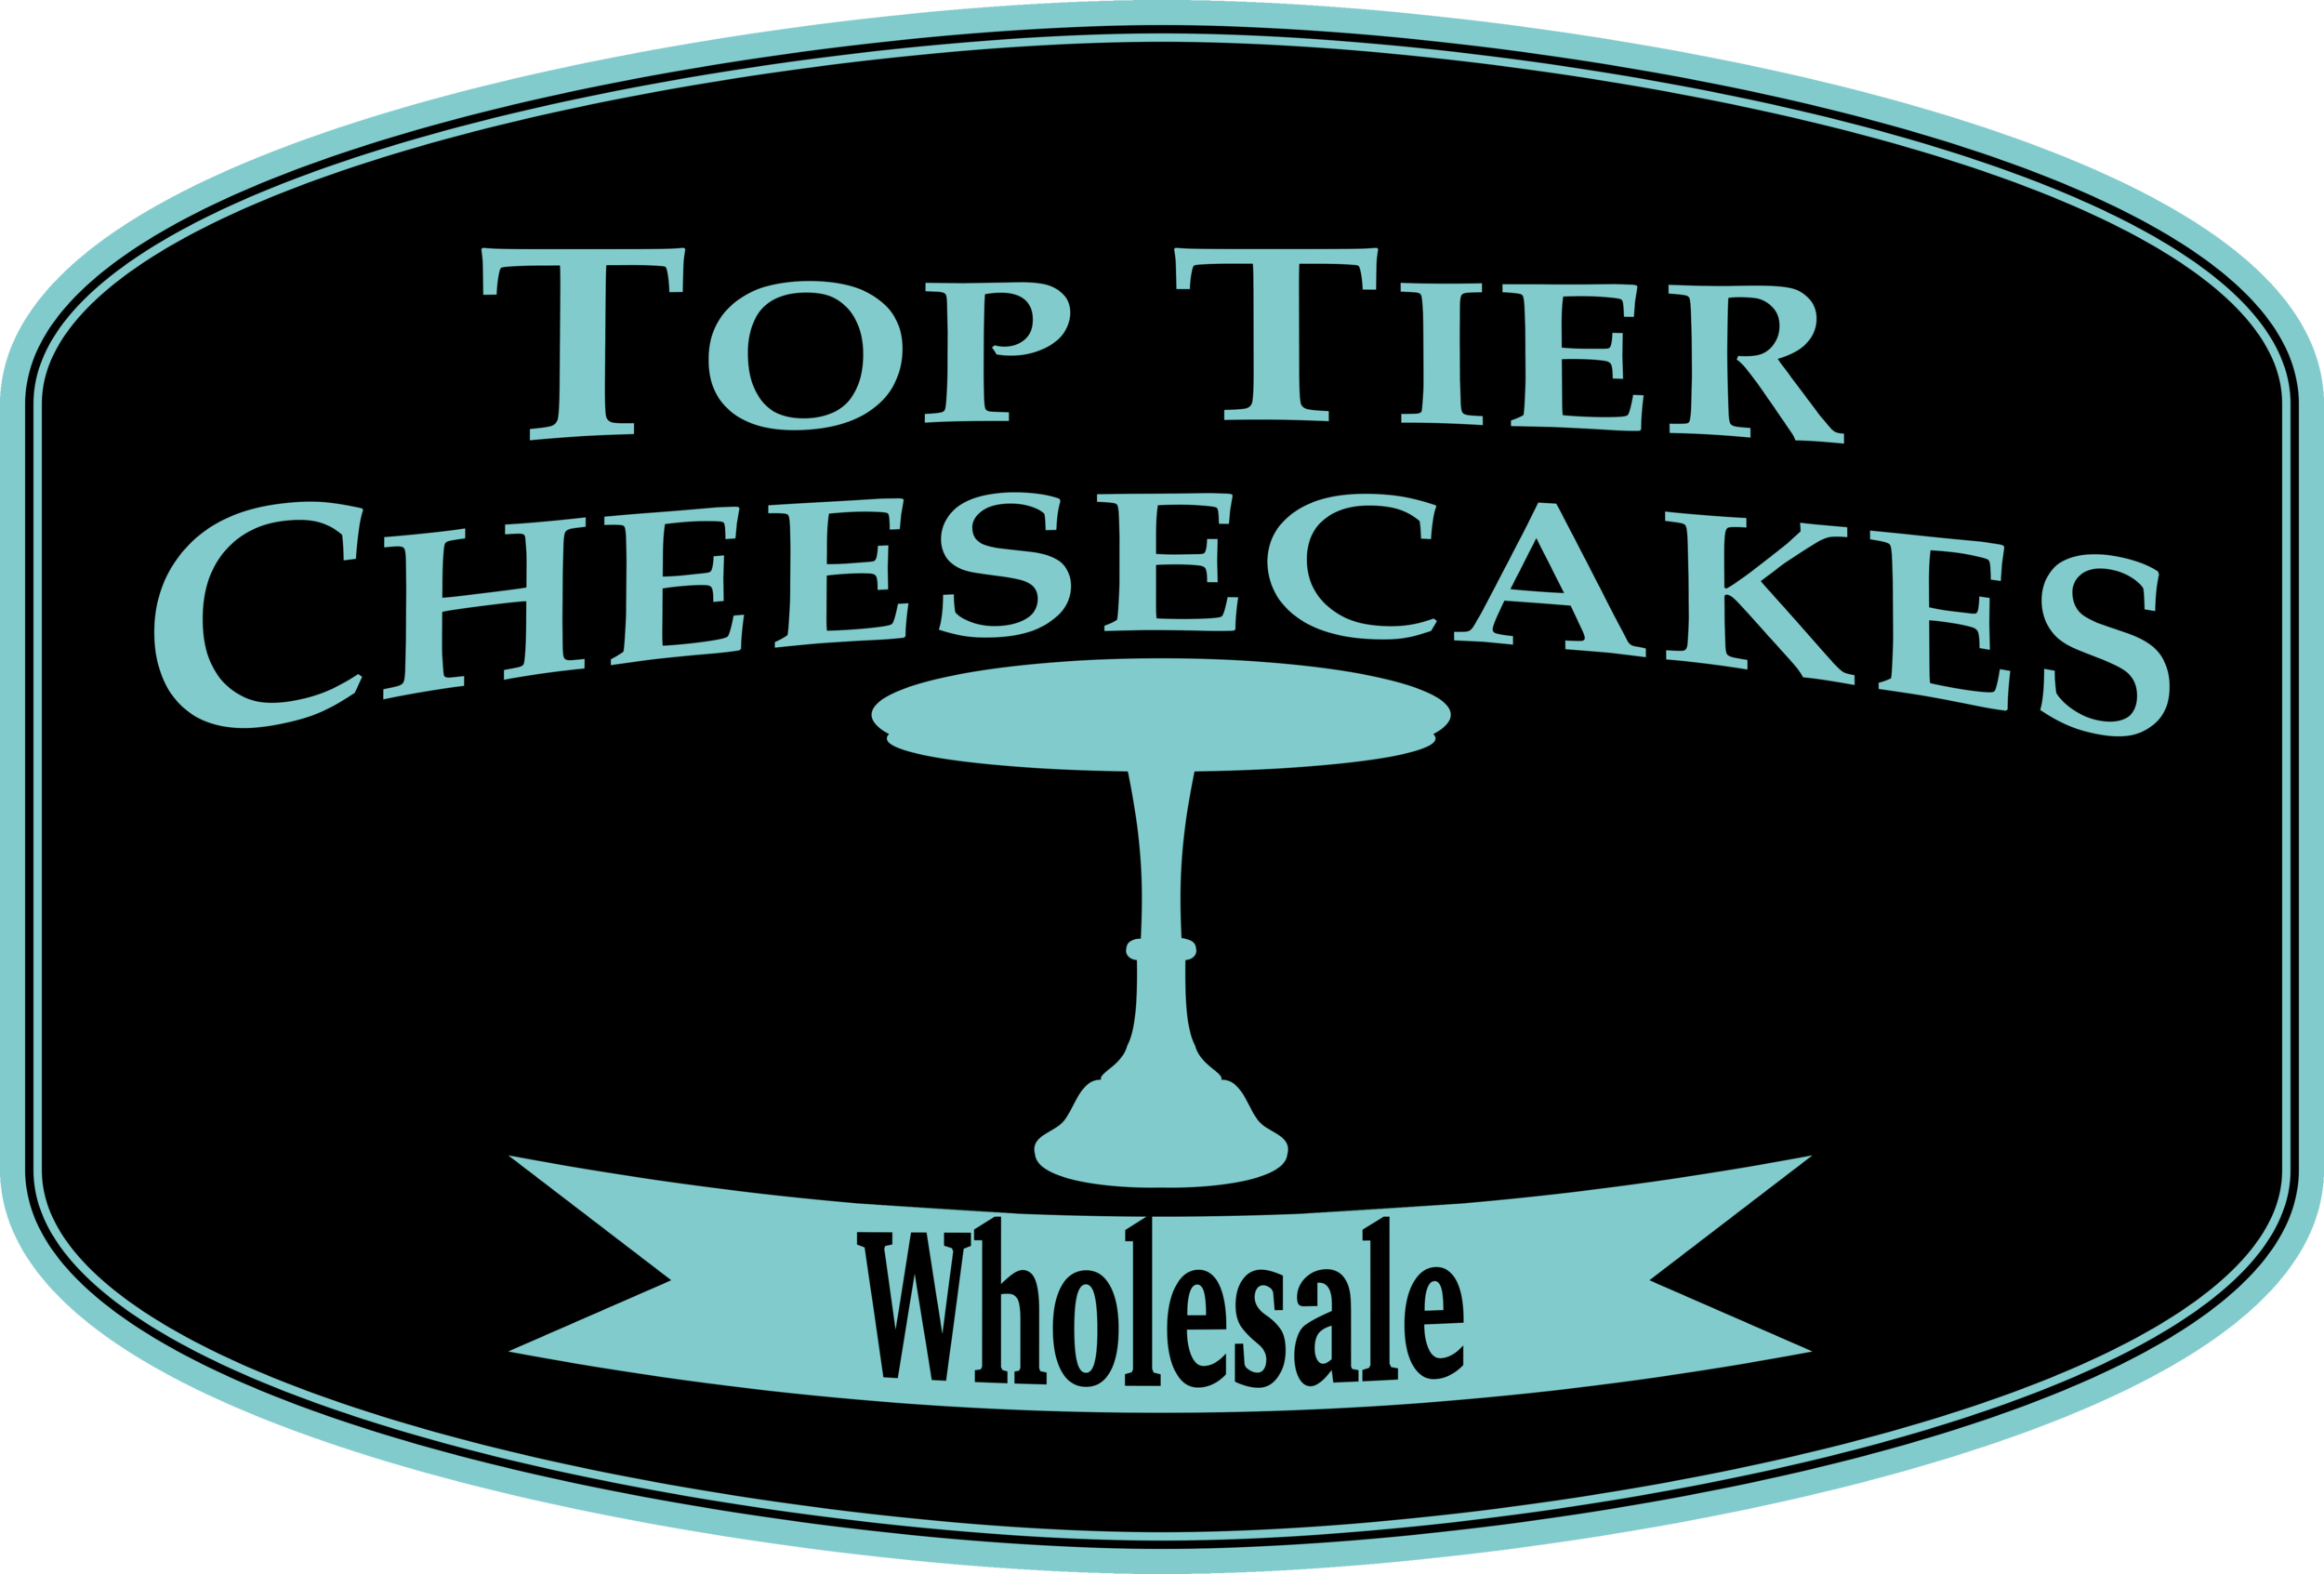 Top Tier Cheesecakes Wholesale